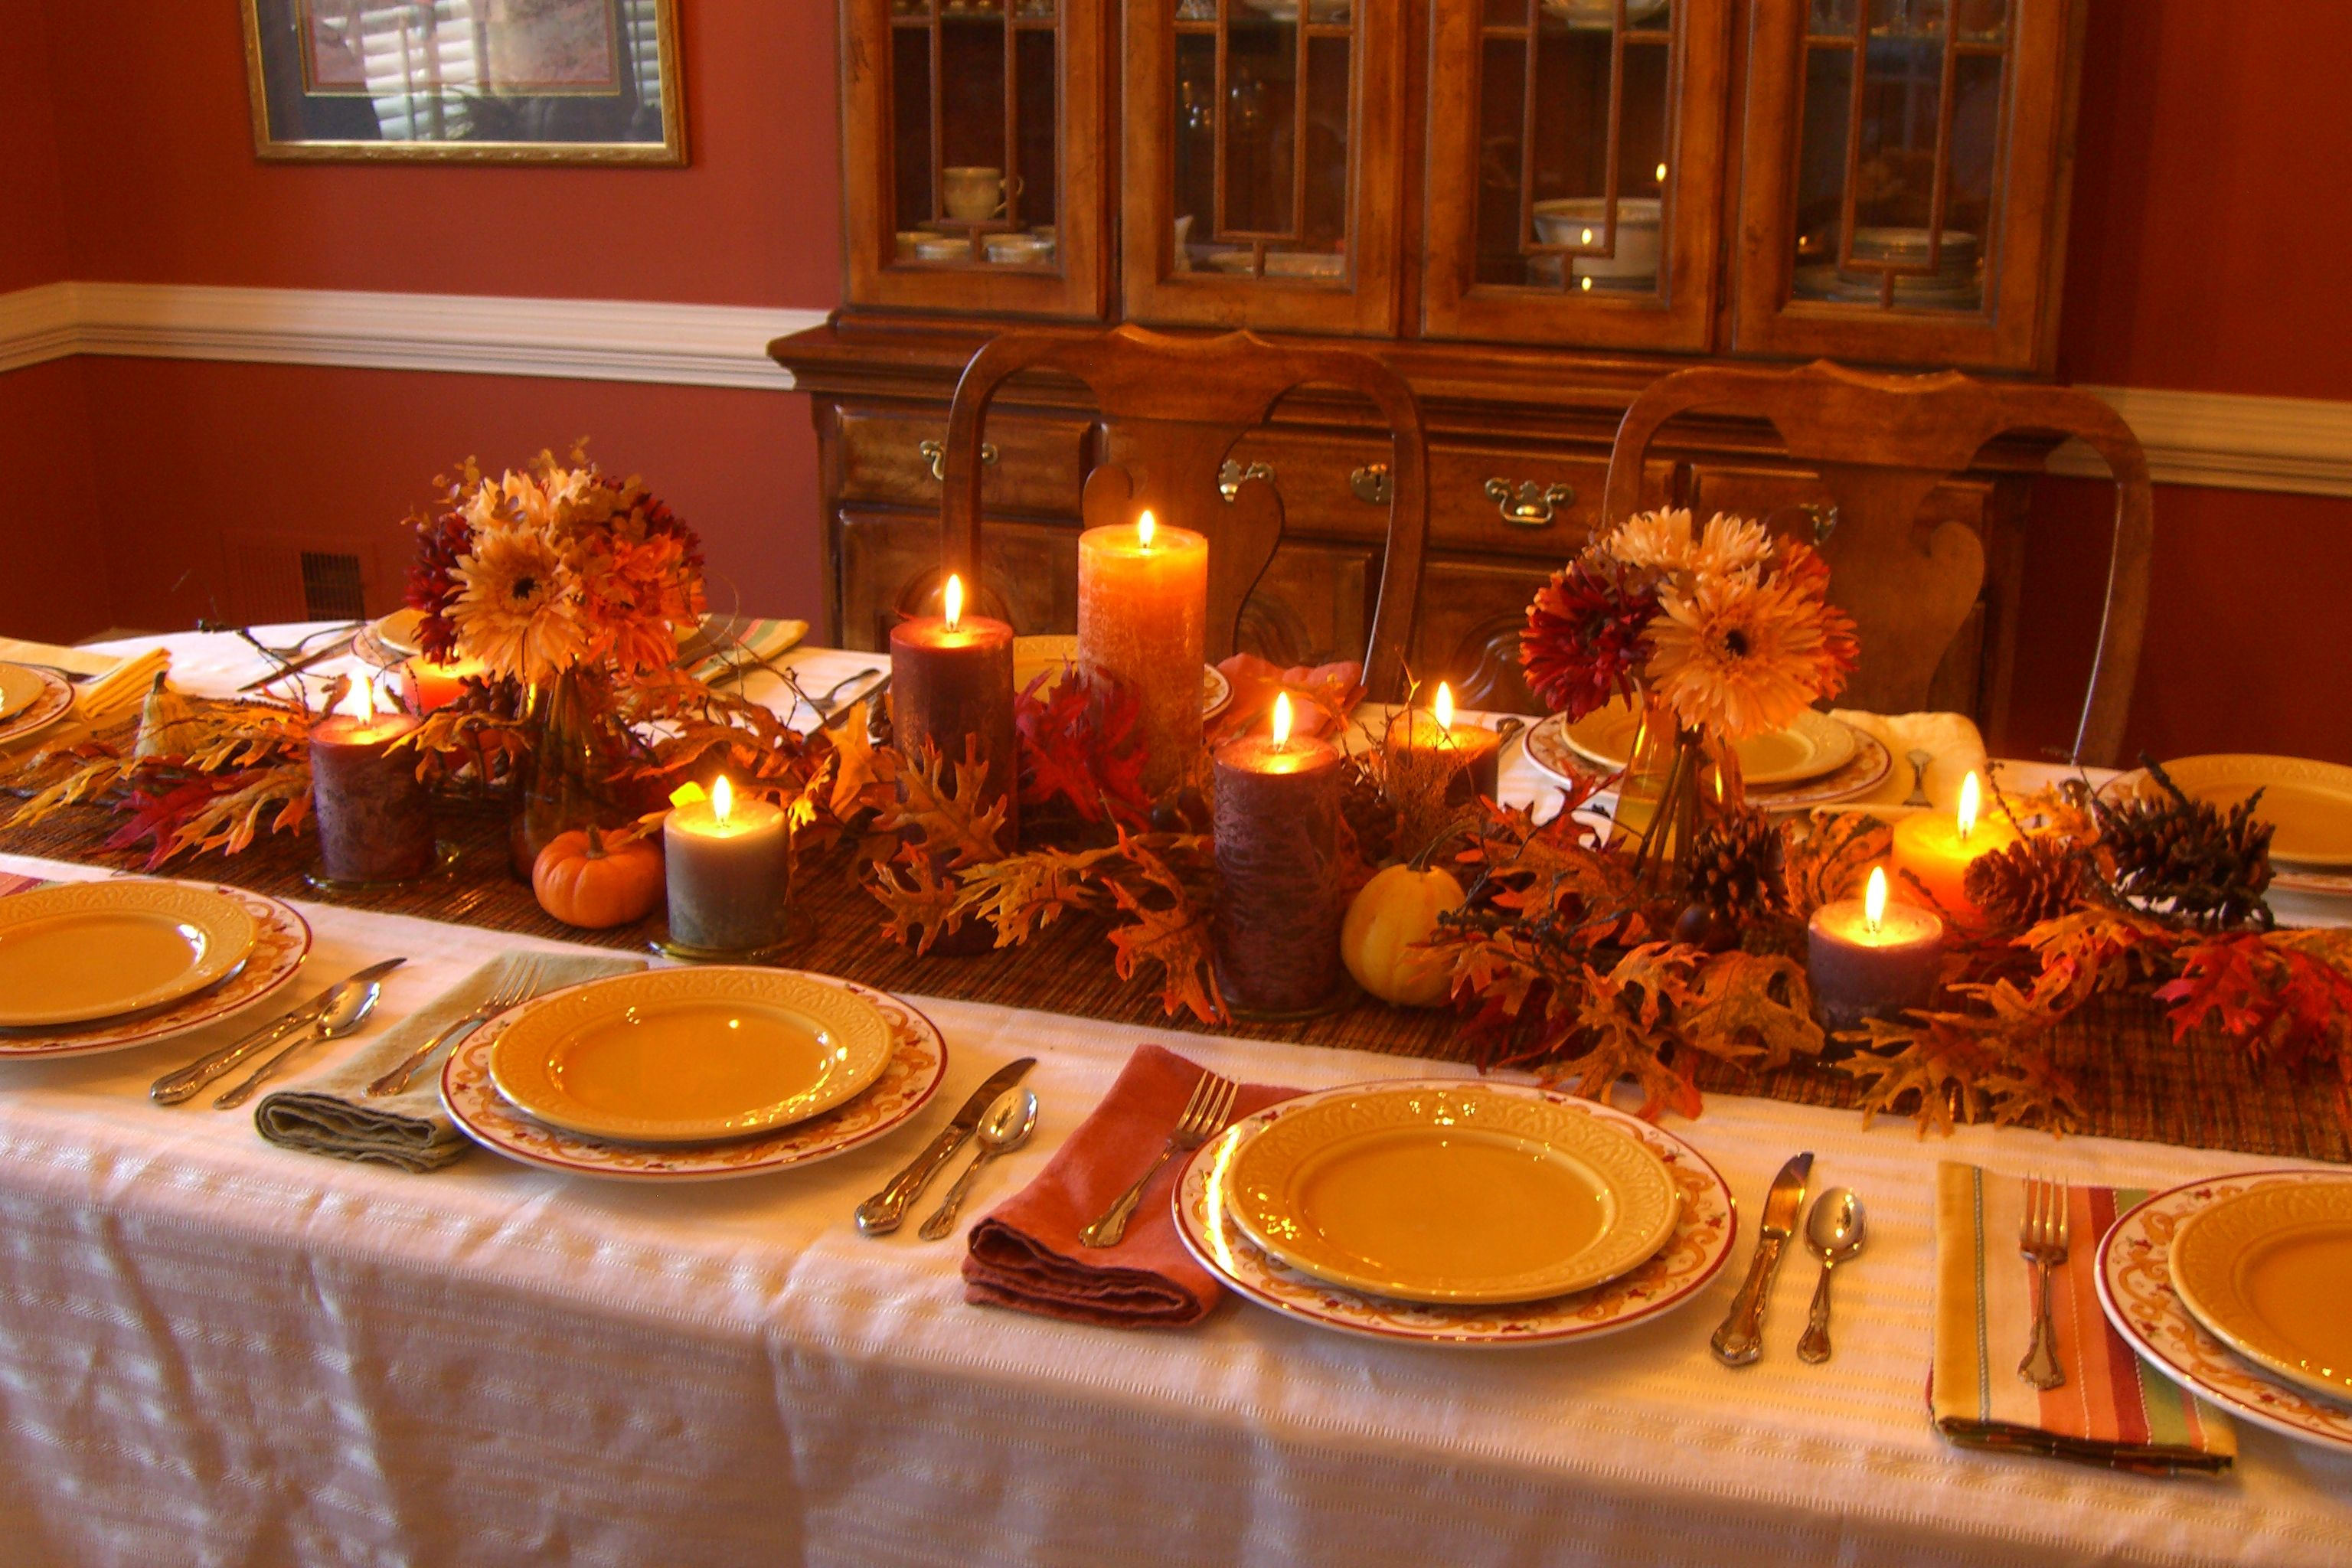 Fall Table With Candles  Fall Candlelight Decorating  Pinterest Unique Dining Room Centerpiece Ideas Candles Review